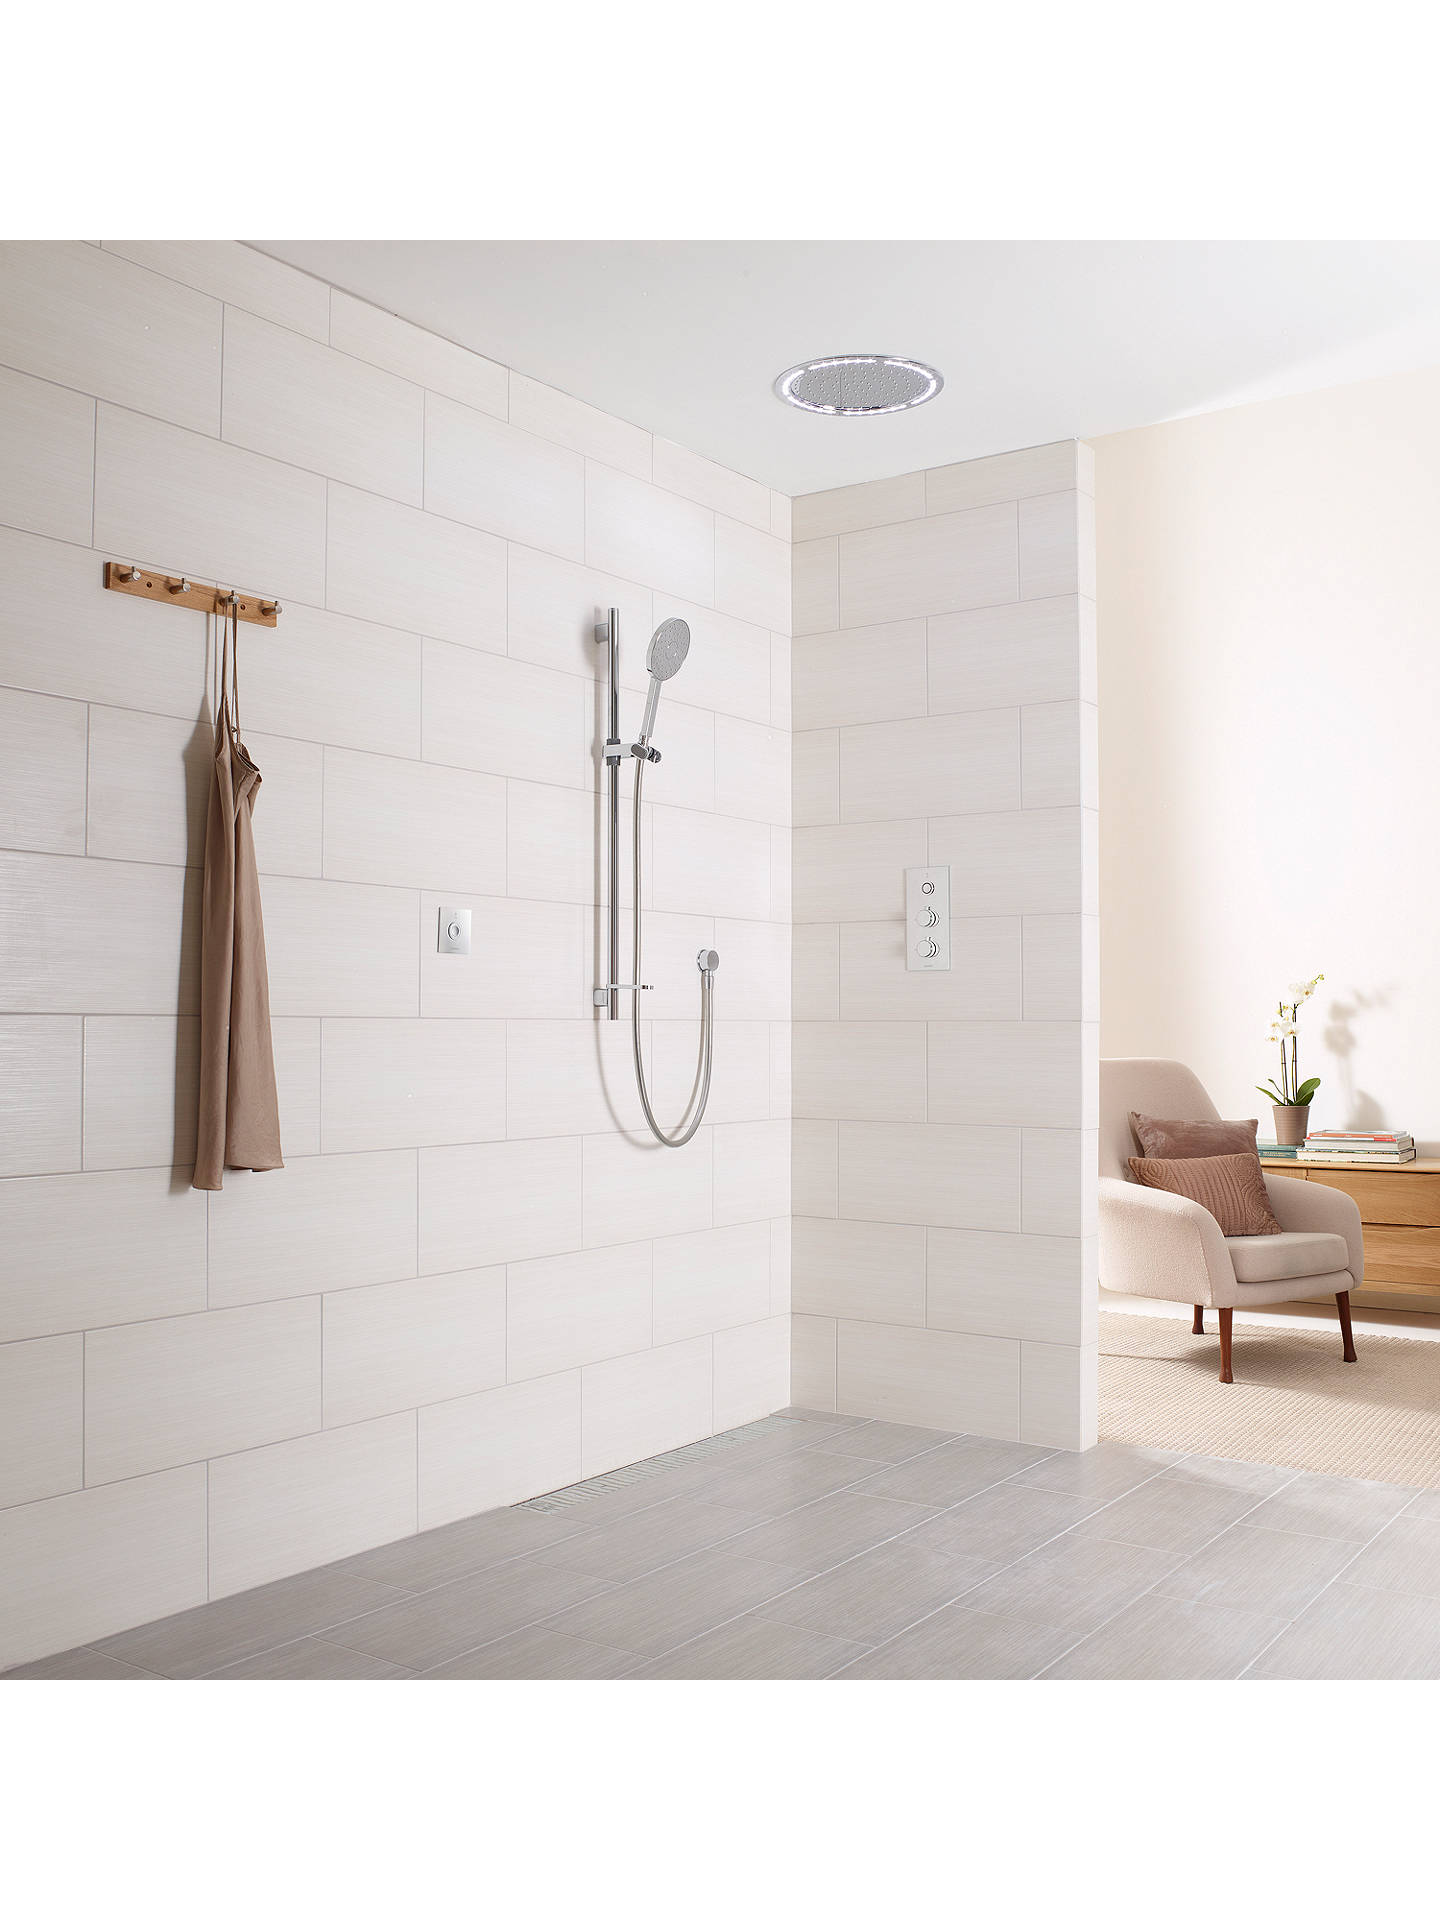 Buy Aqualisa Infinia 1 Smart Shower with Remote and 140mm Handset, Silver Online at johnlewis.com